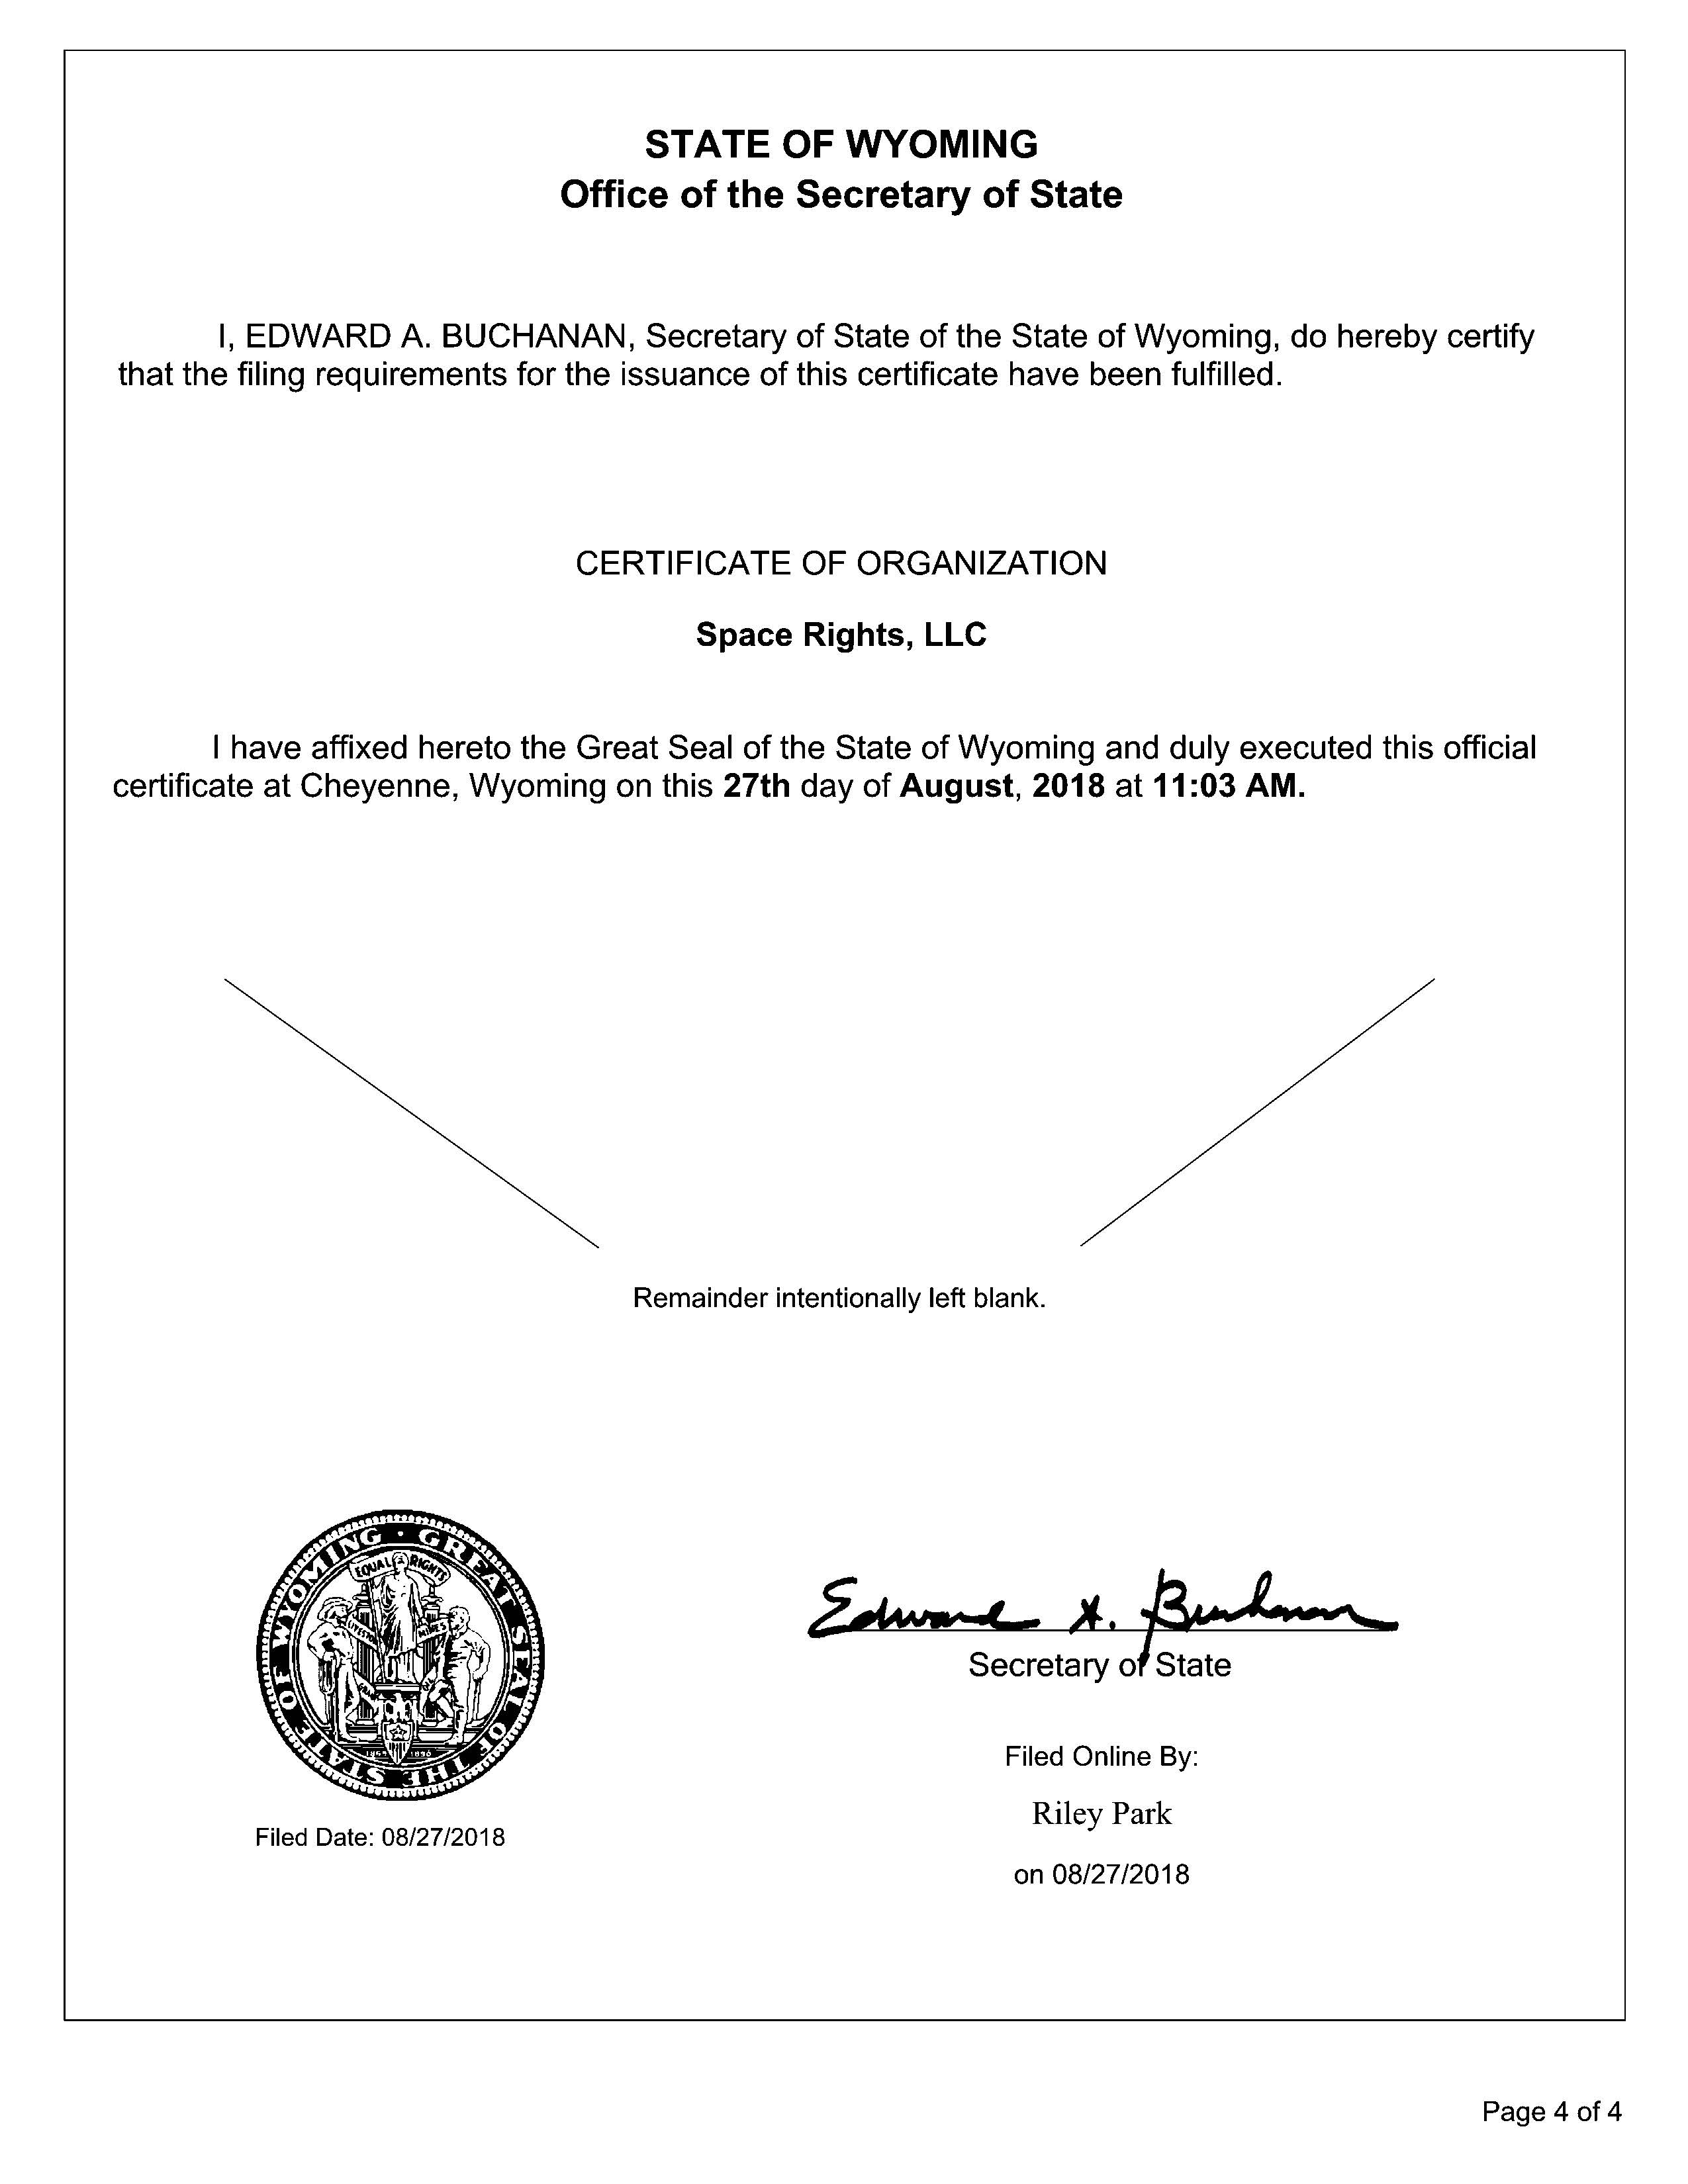 Space Rights LLC - FIled 08.27.2018